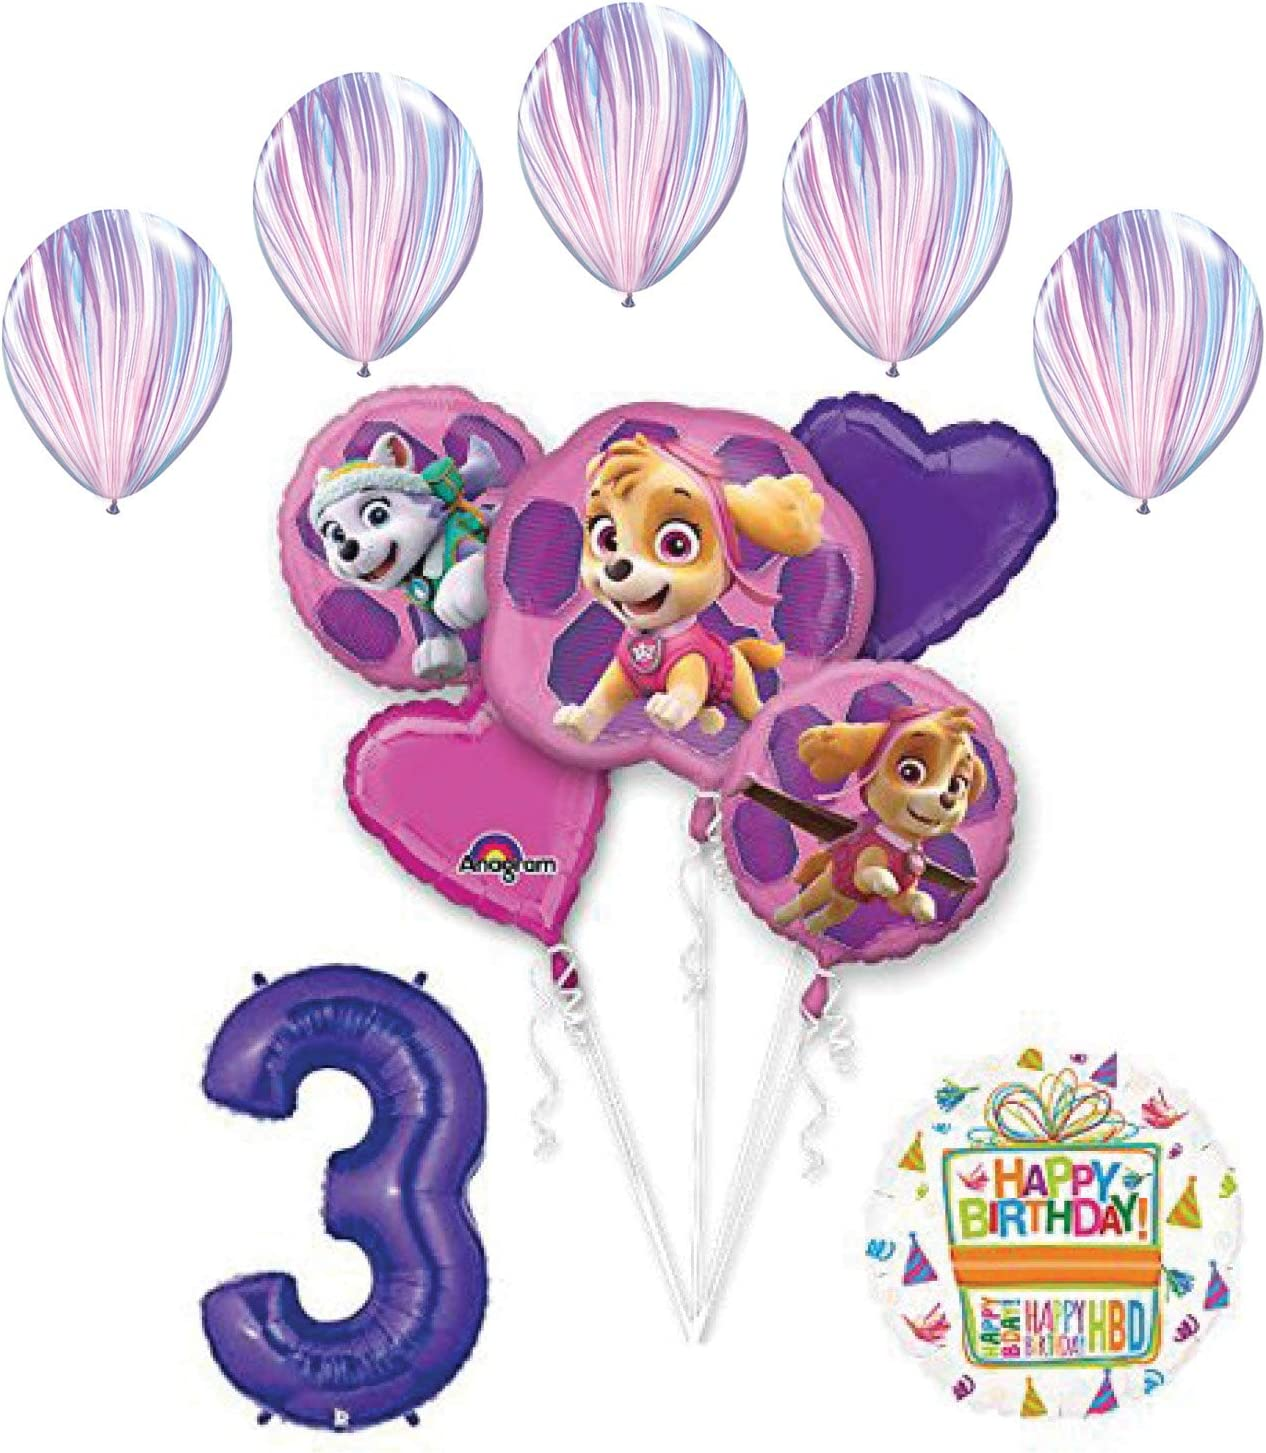 Amazon.com: Skye and Everest - Ramo de globos y accesorios ...